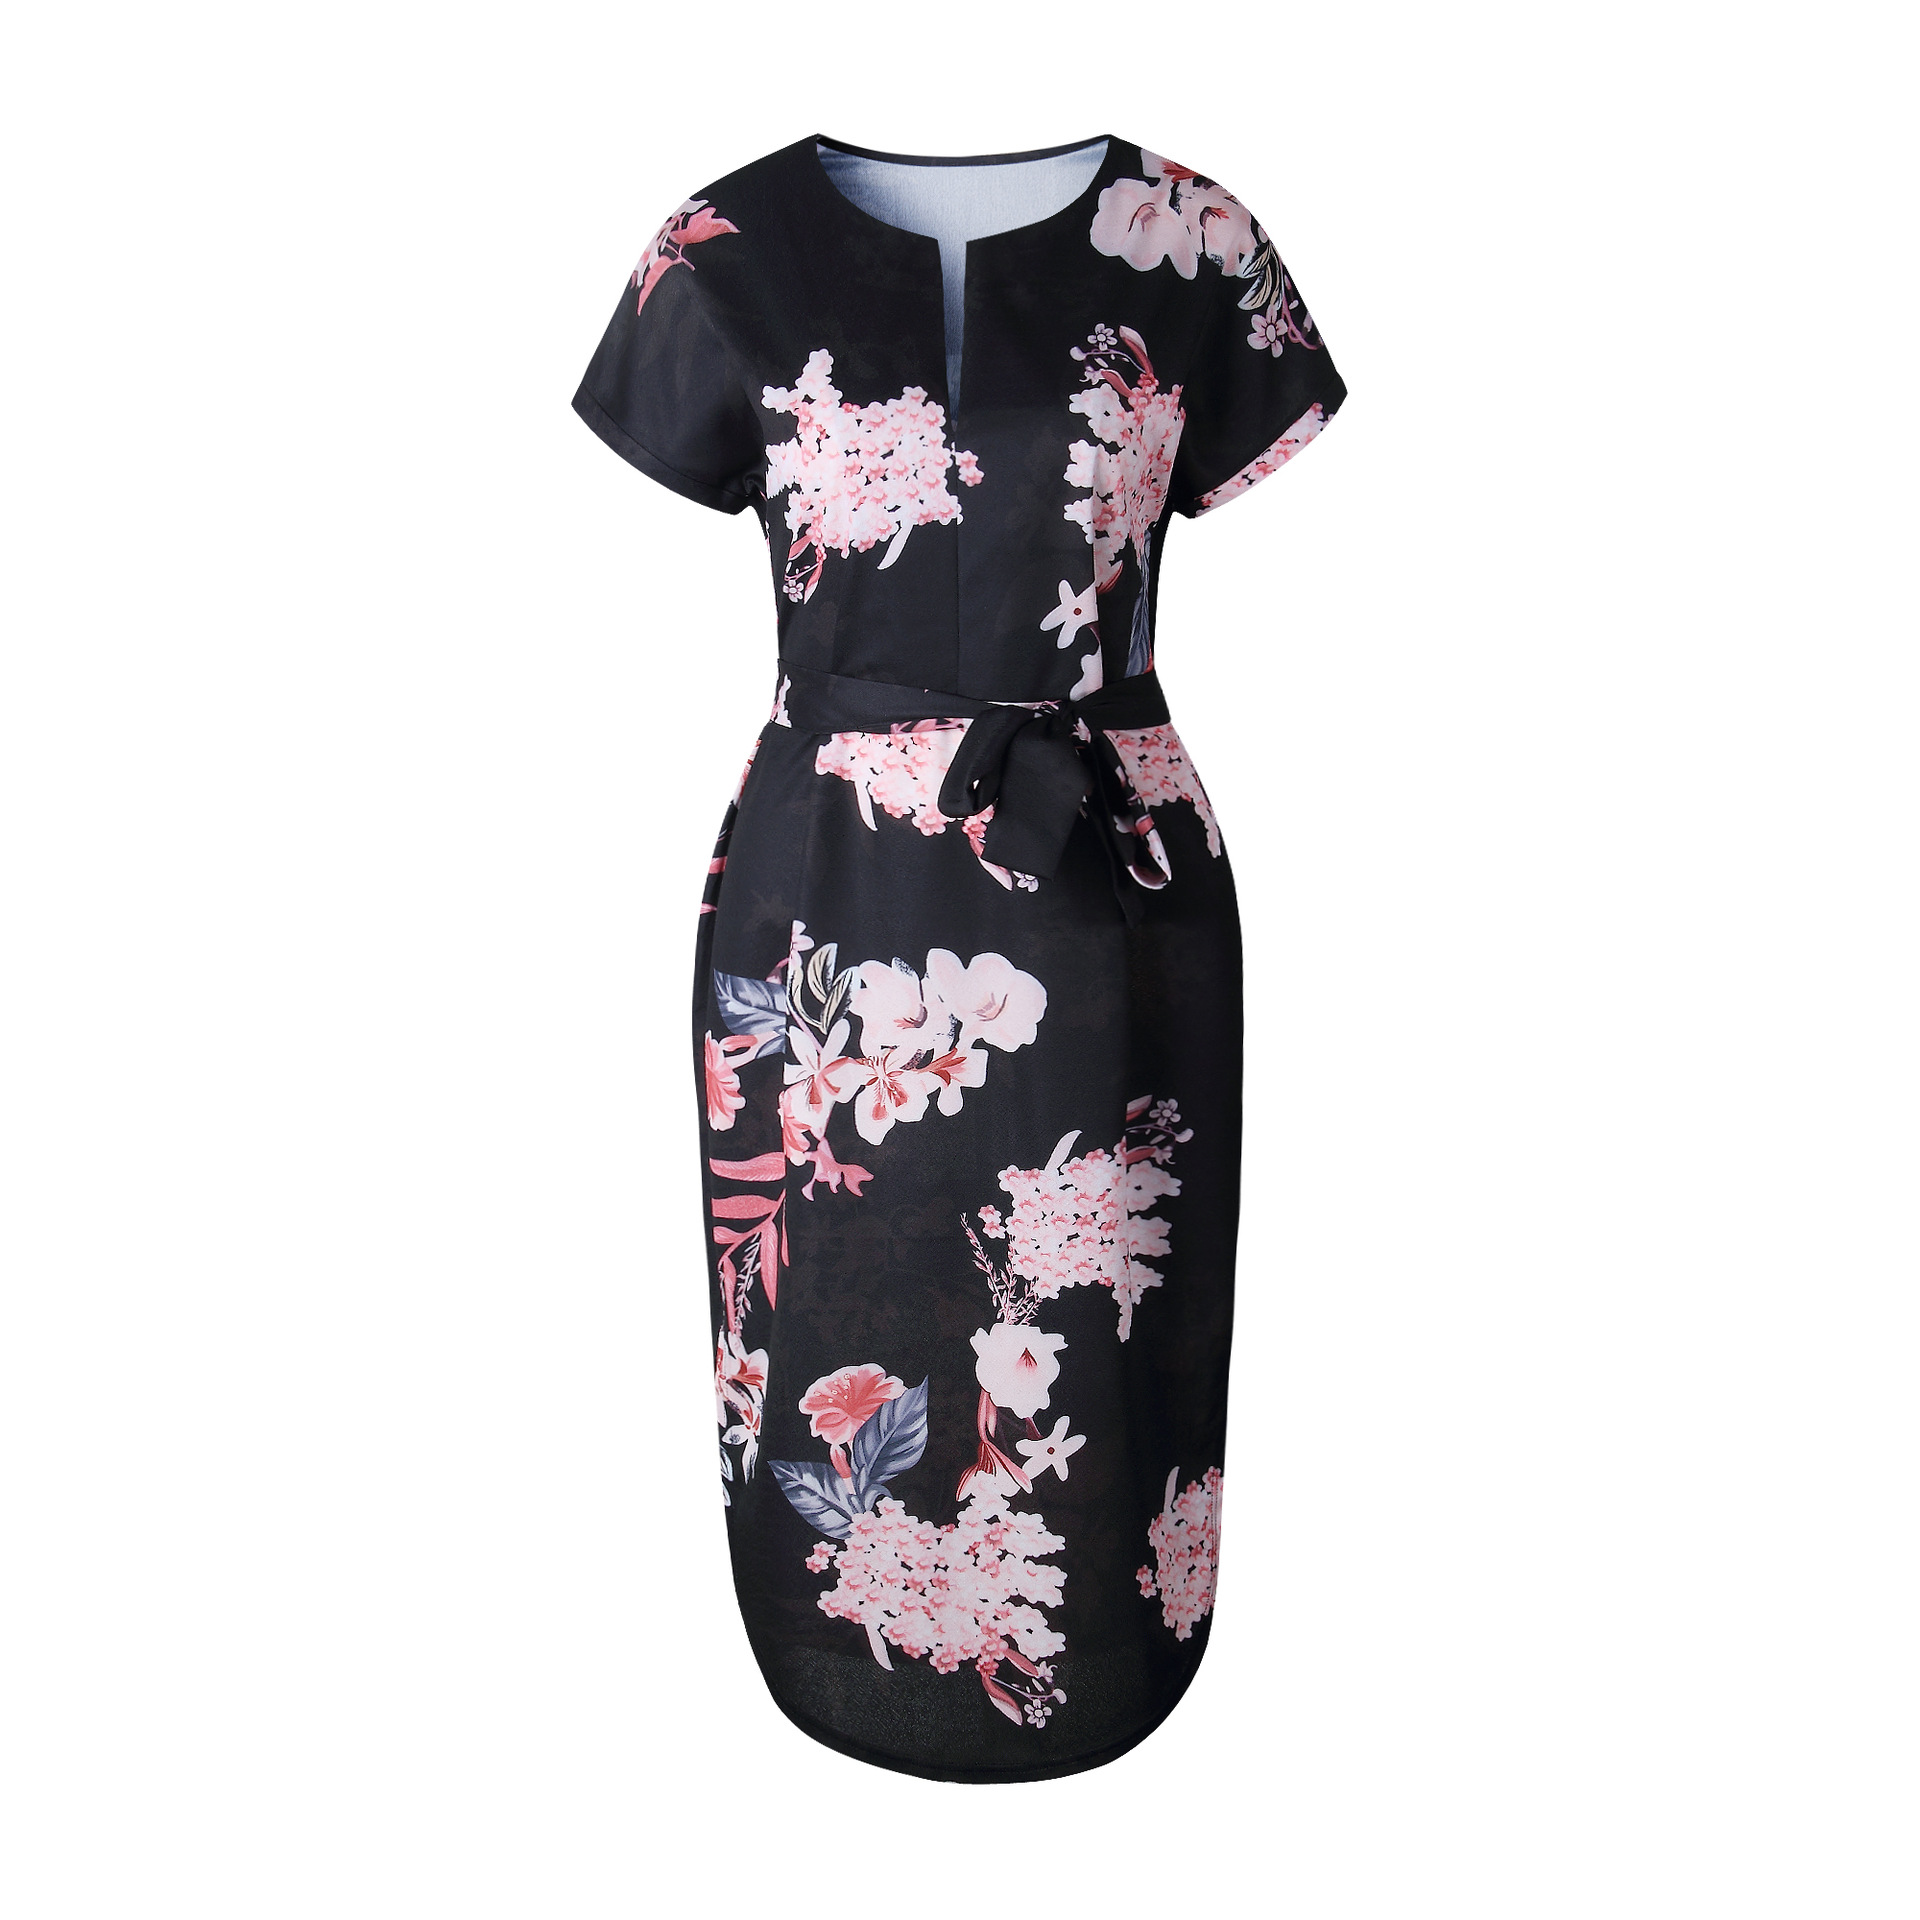 2018 Summer Dress Women Print V Neck Short Sleeve Robe Female Dresses Casual Sashes Midi Dress Ladies Elegant Vestidos Dropship 23